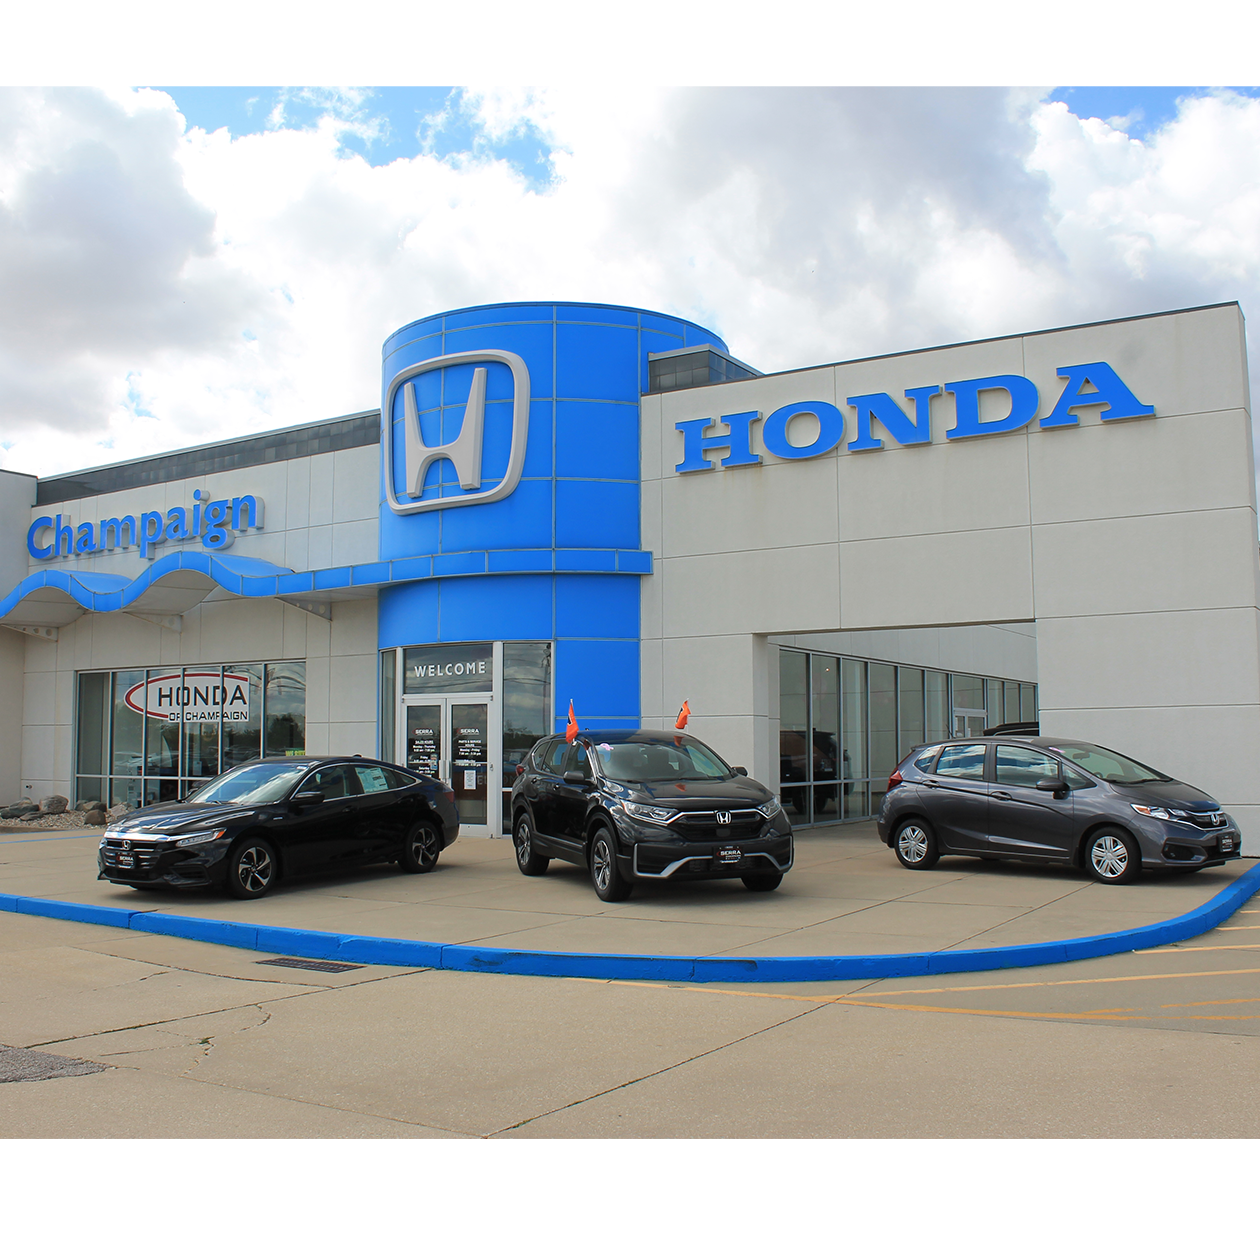 Serra Honda of Champaign Dealership Exterior